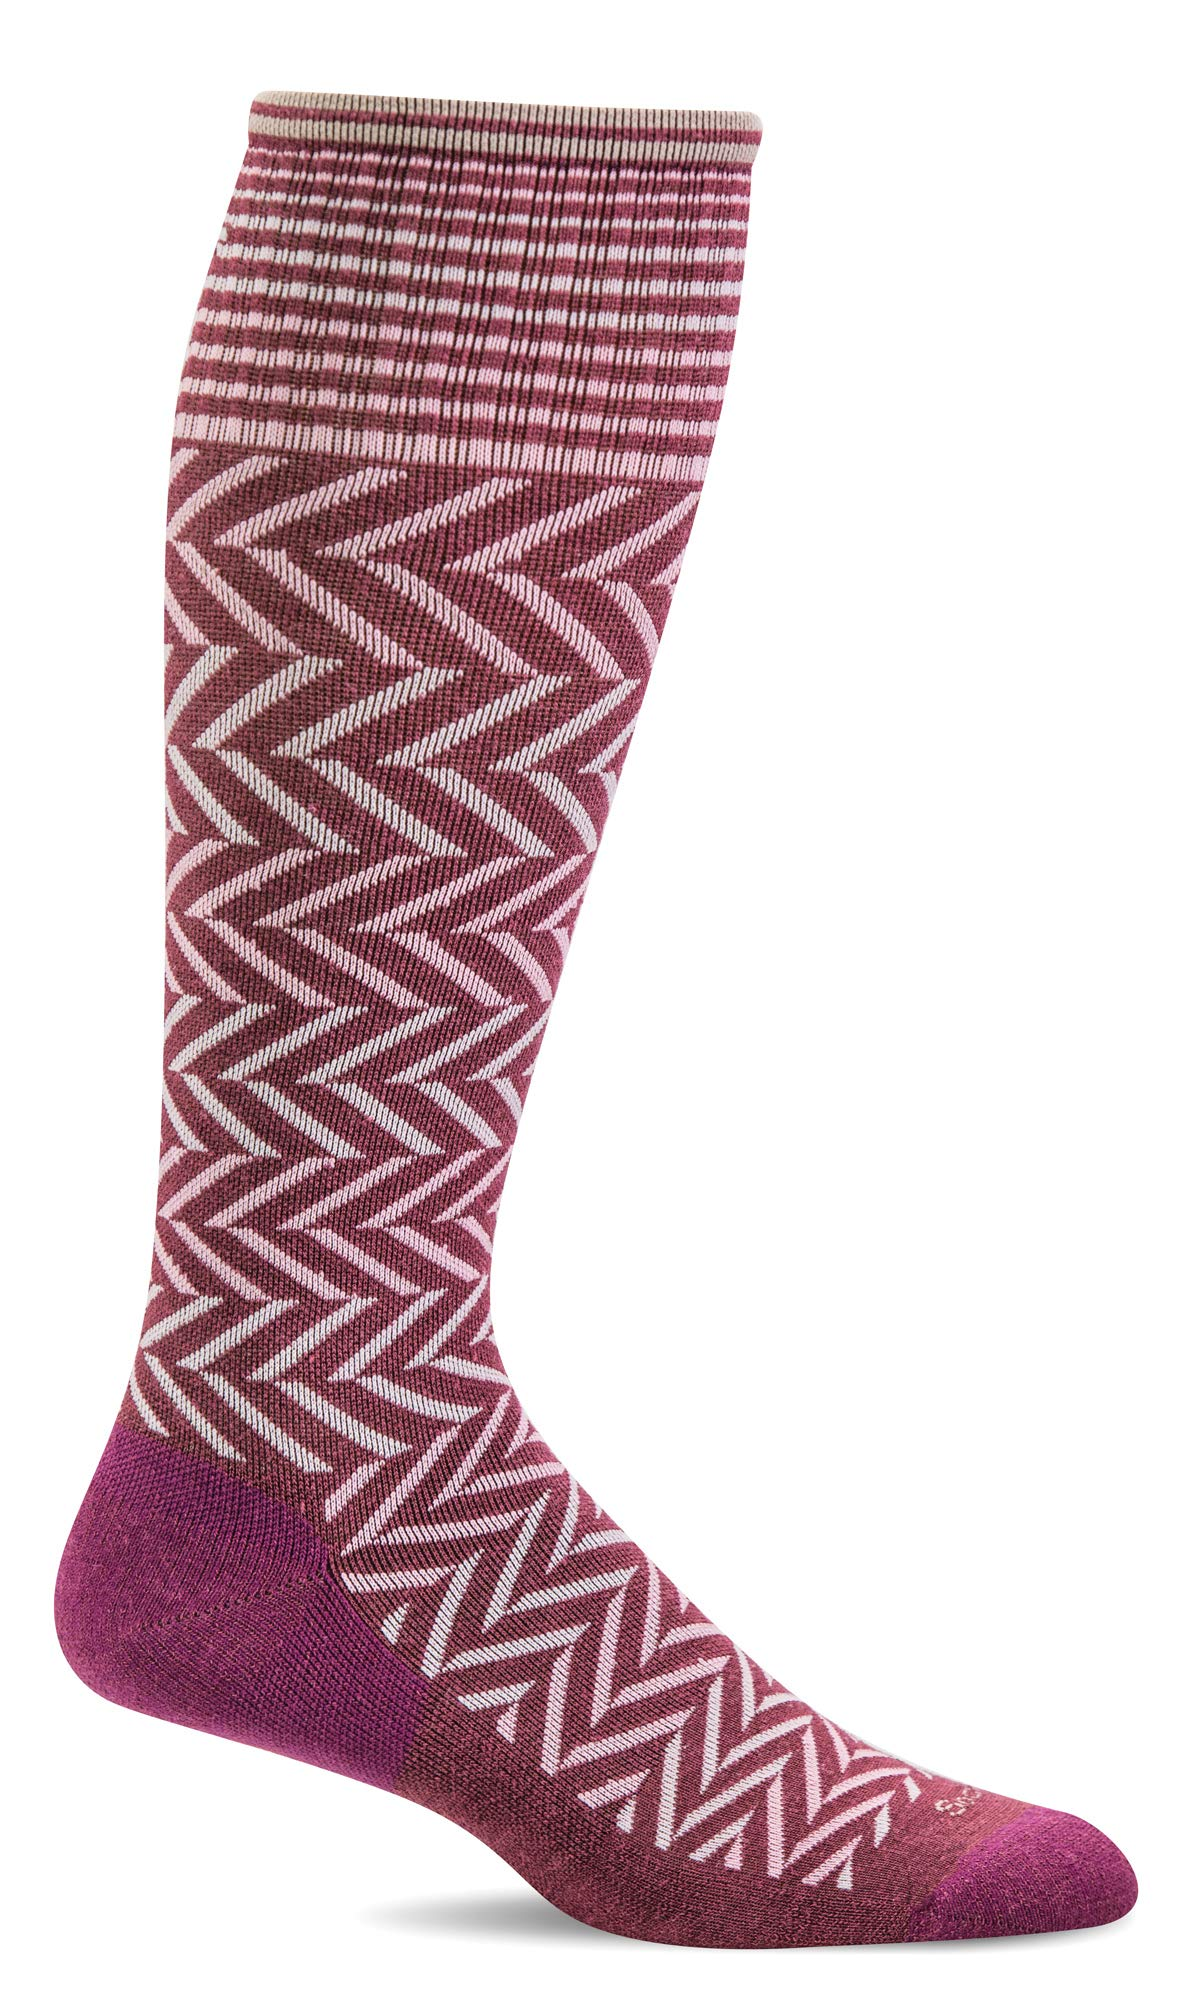 Sockwell Women's Chevron Moderate Graduated Compression Sock, Mulberry - S/M by Sockwell